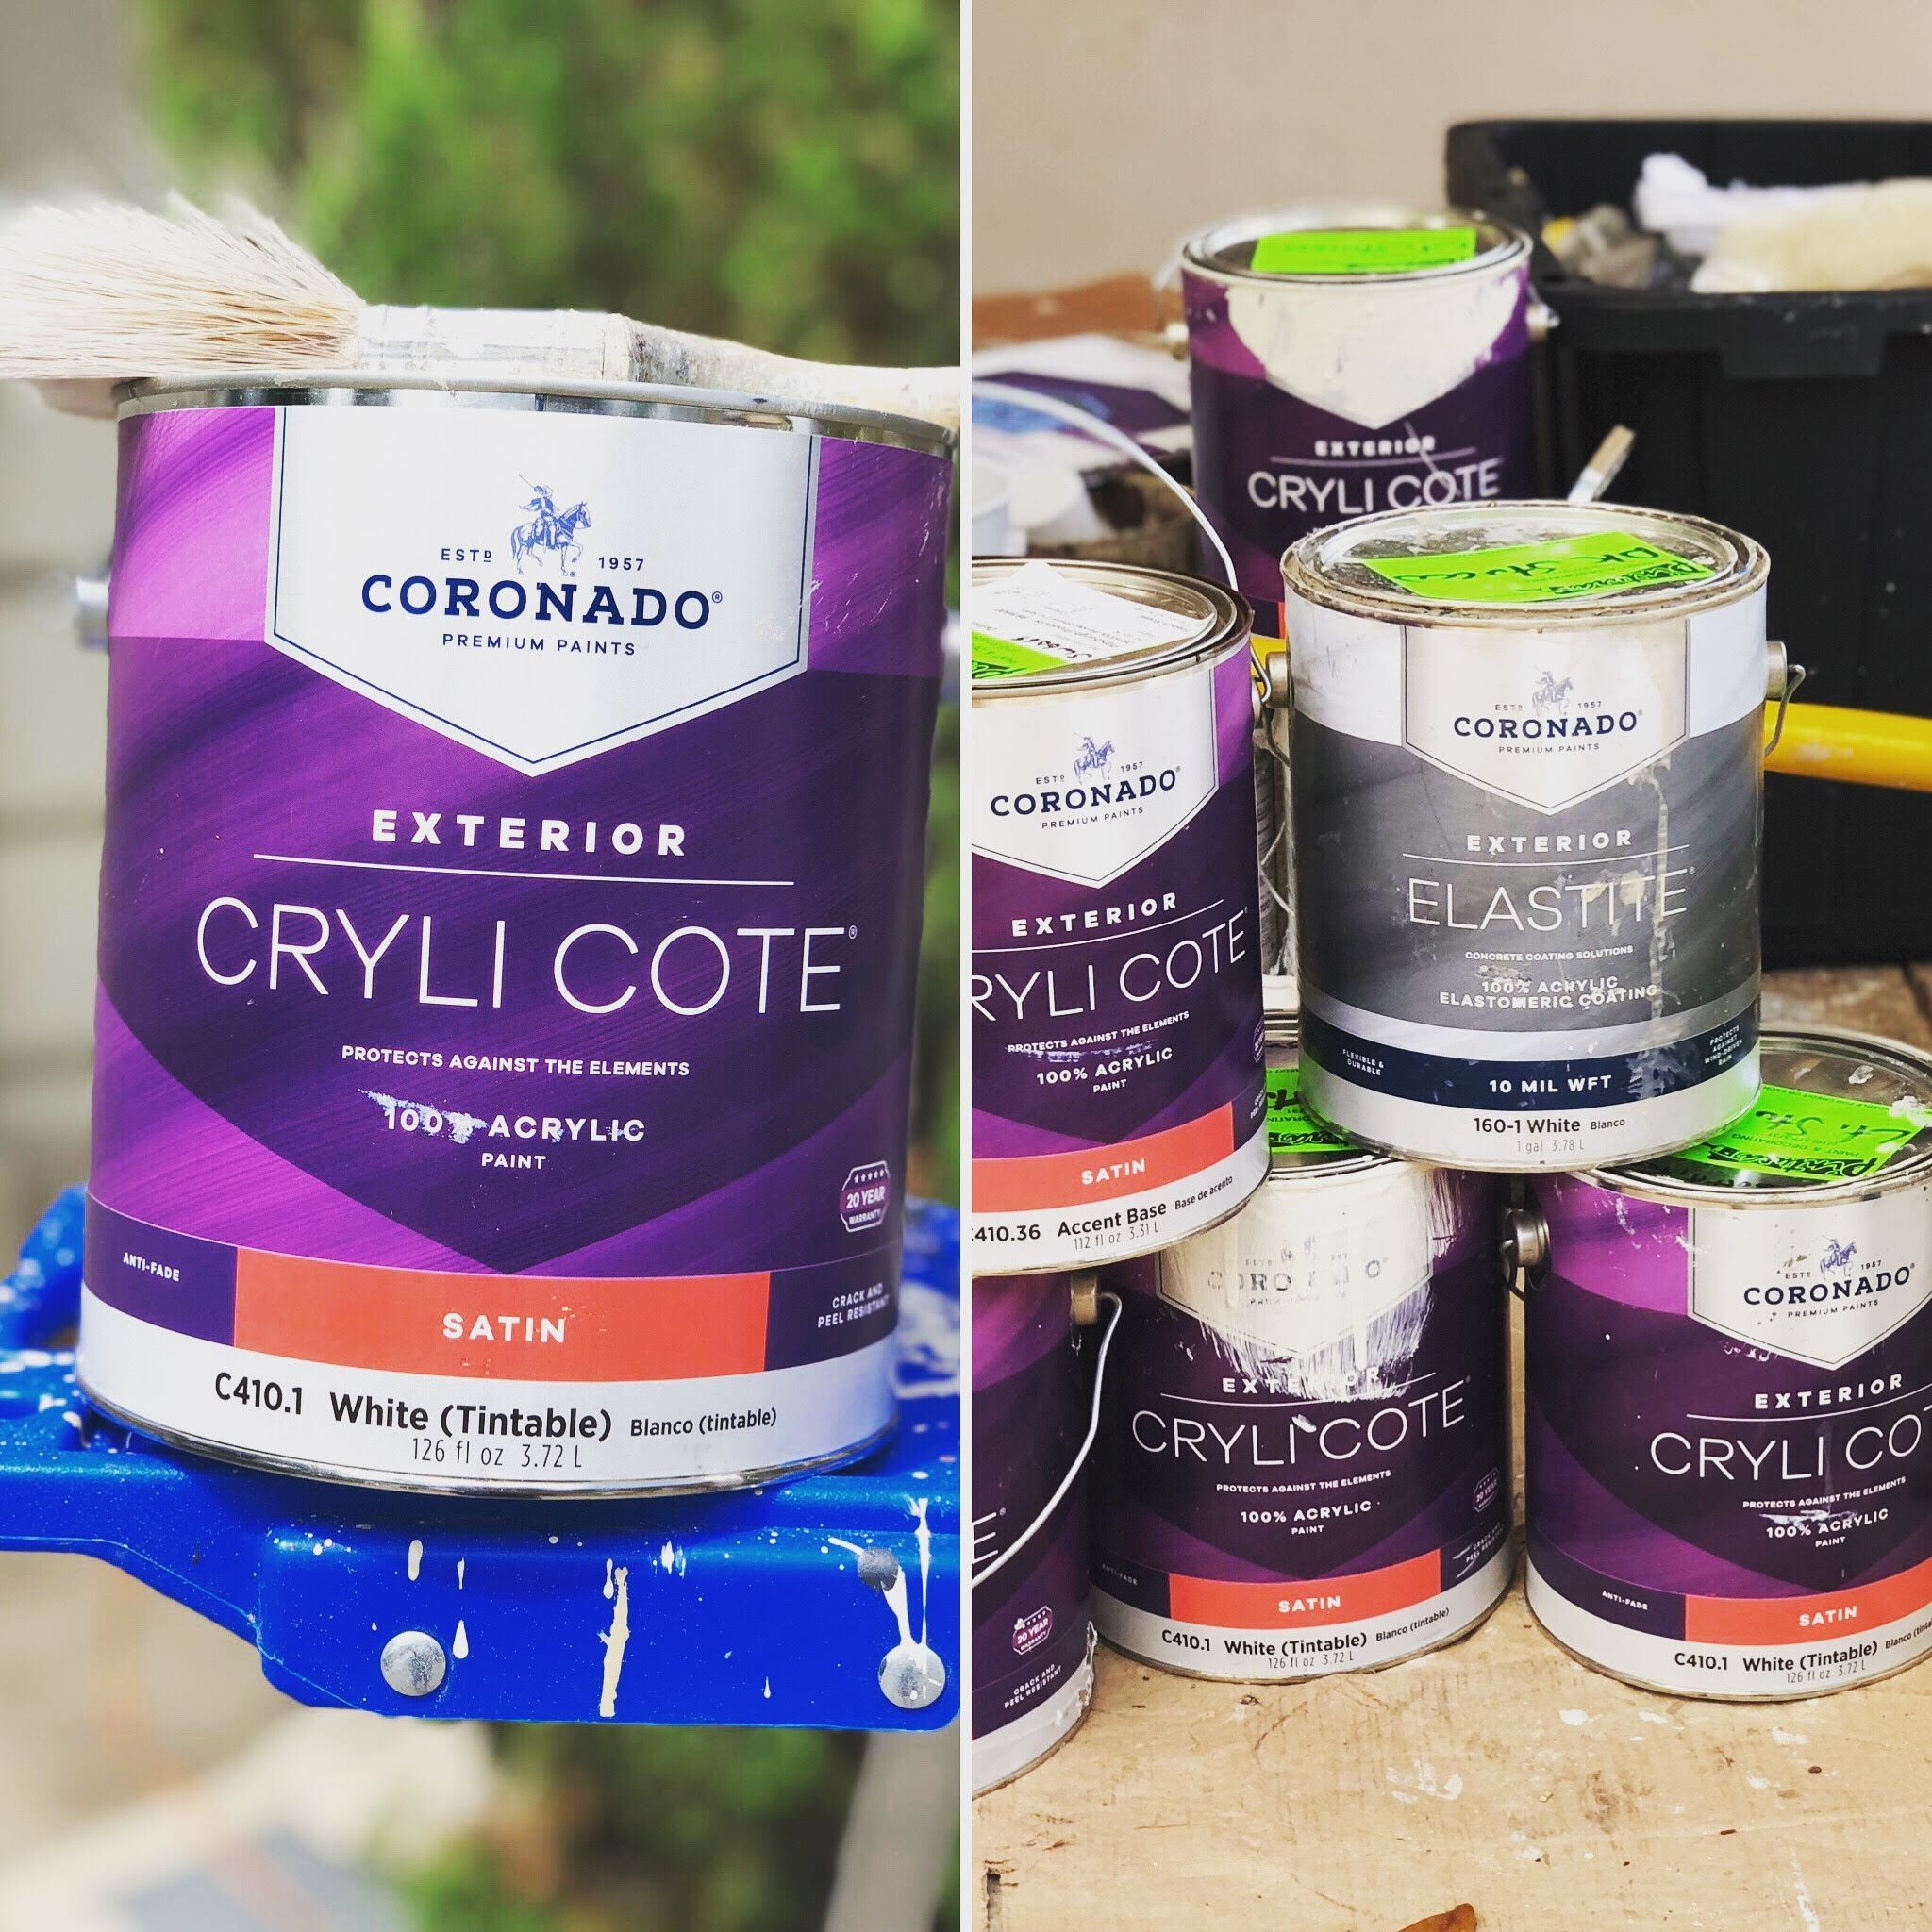 Our best seller for exterior paint is Coronado Cryli Cote